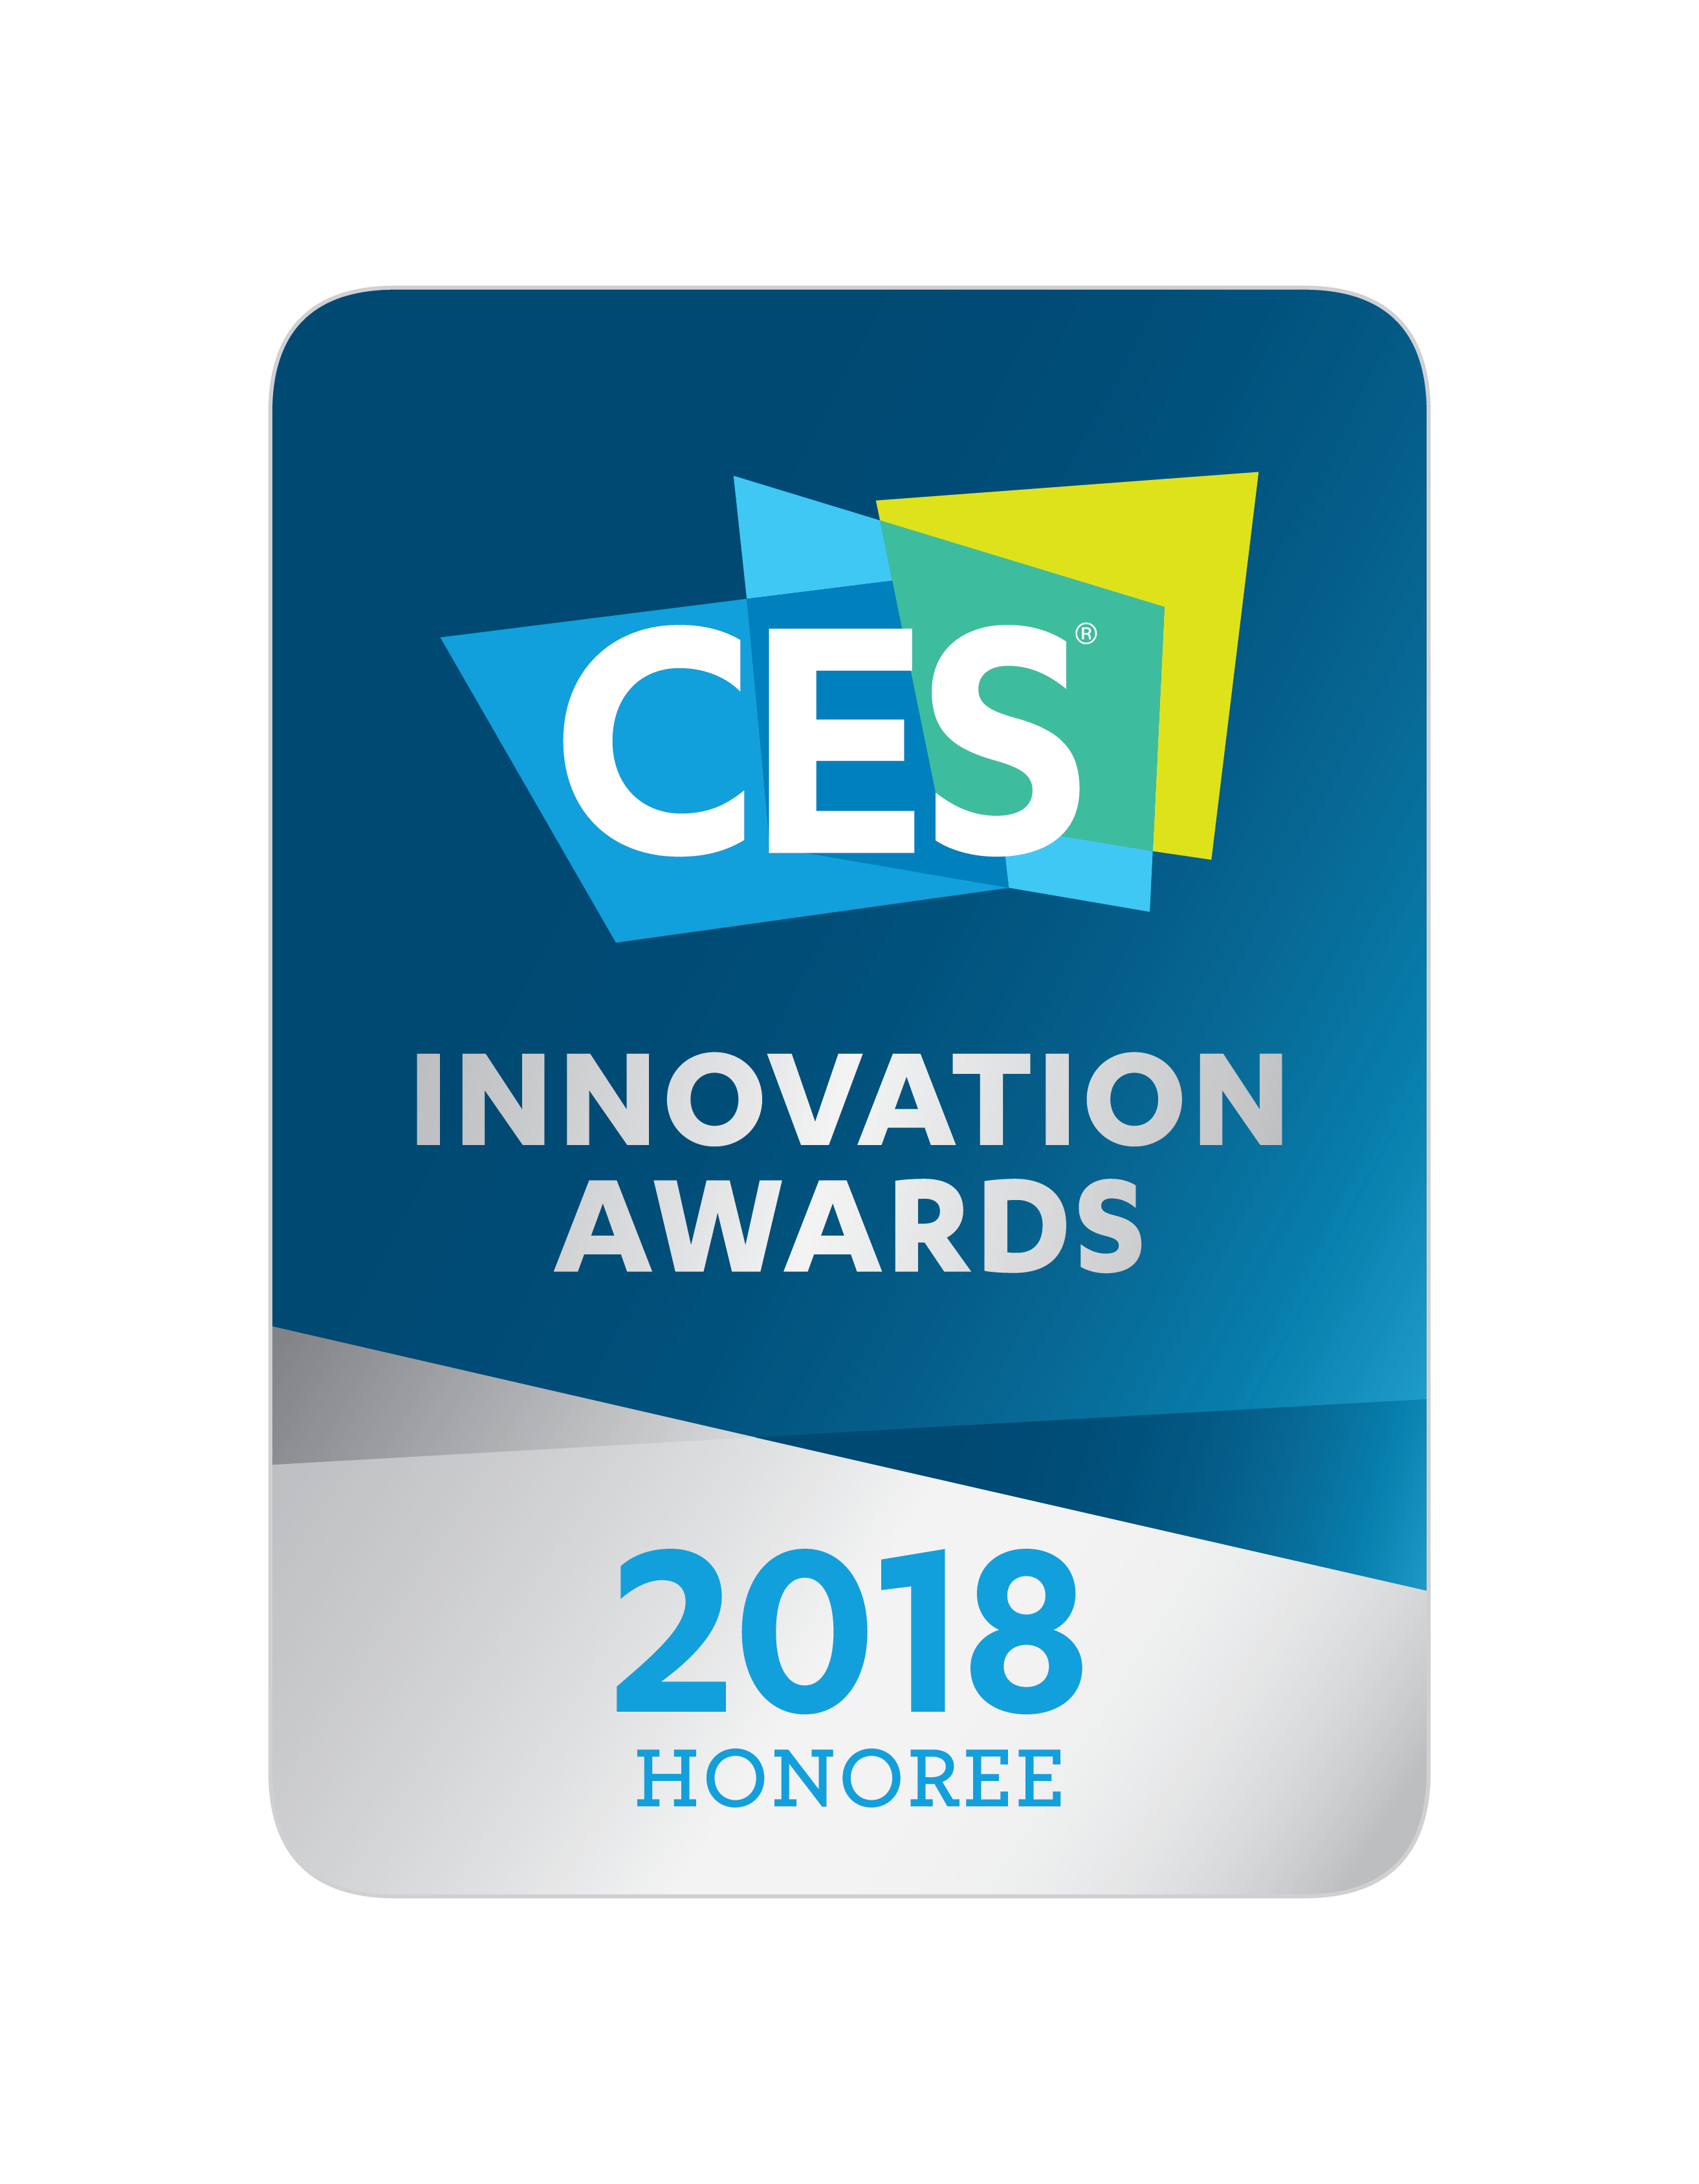 CES 2018 Innovation award Honoree